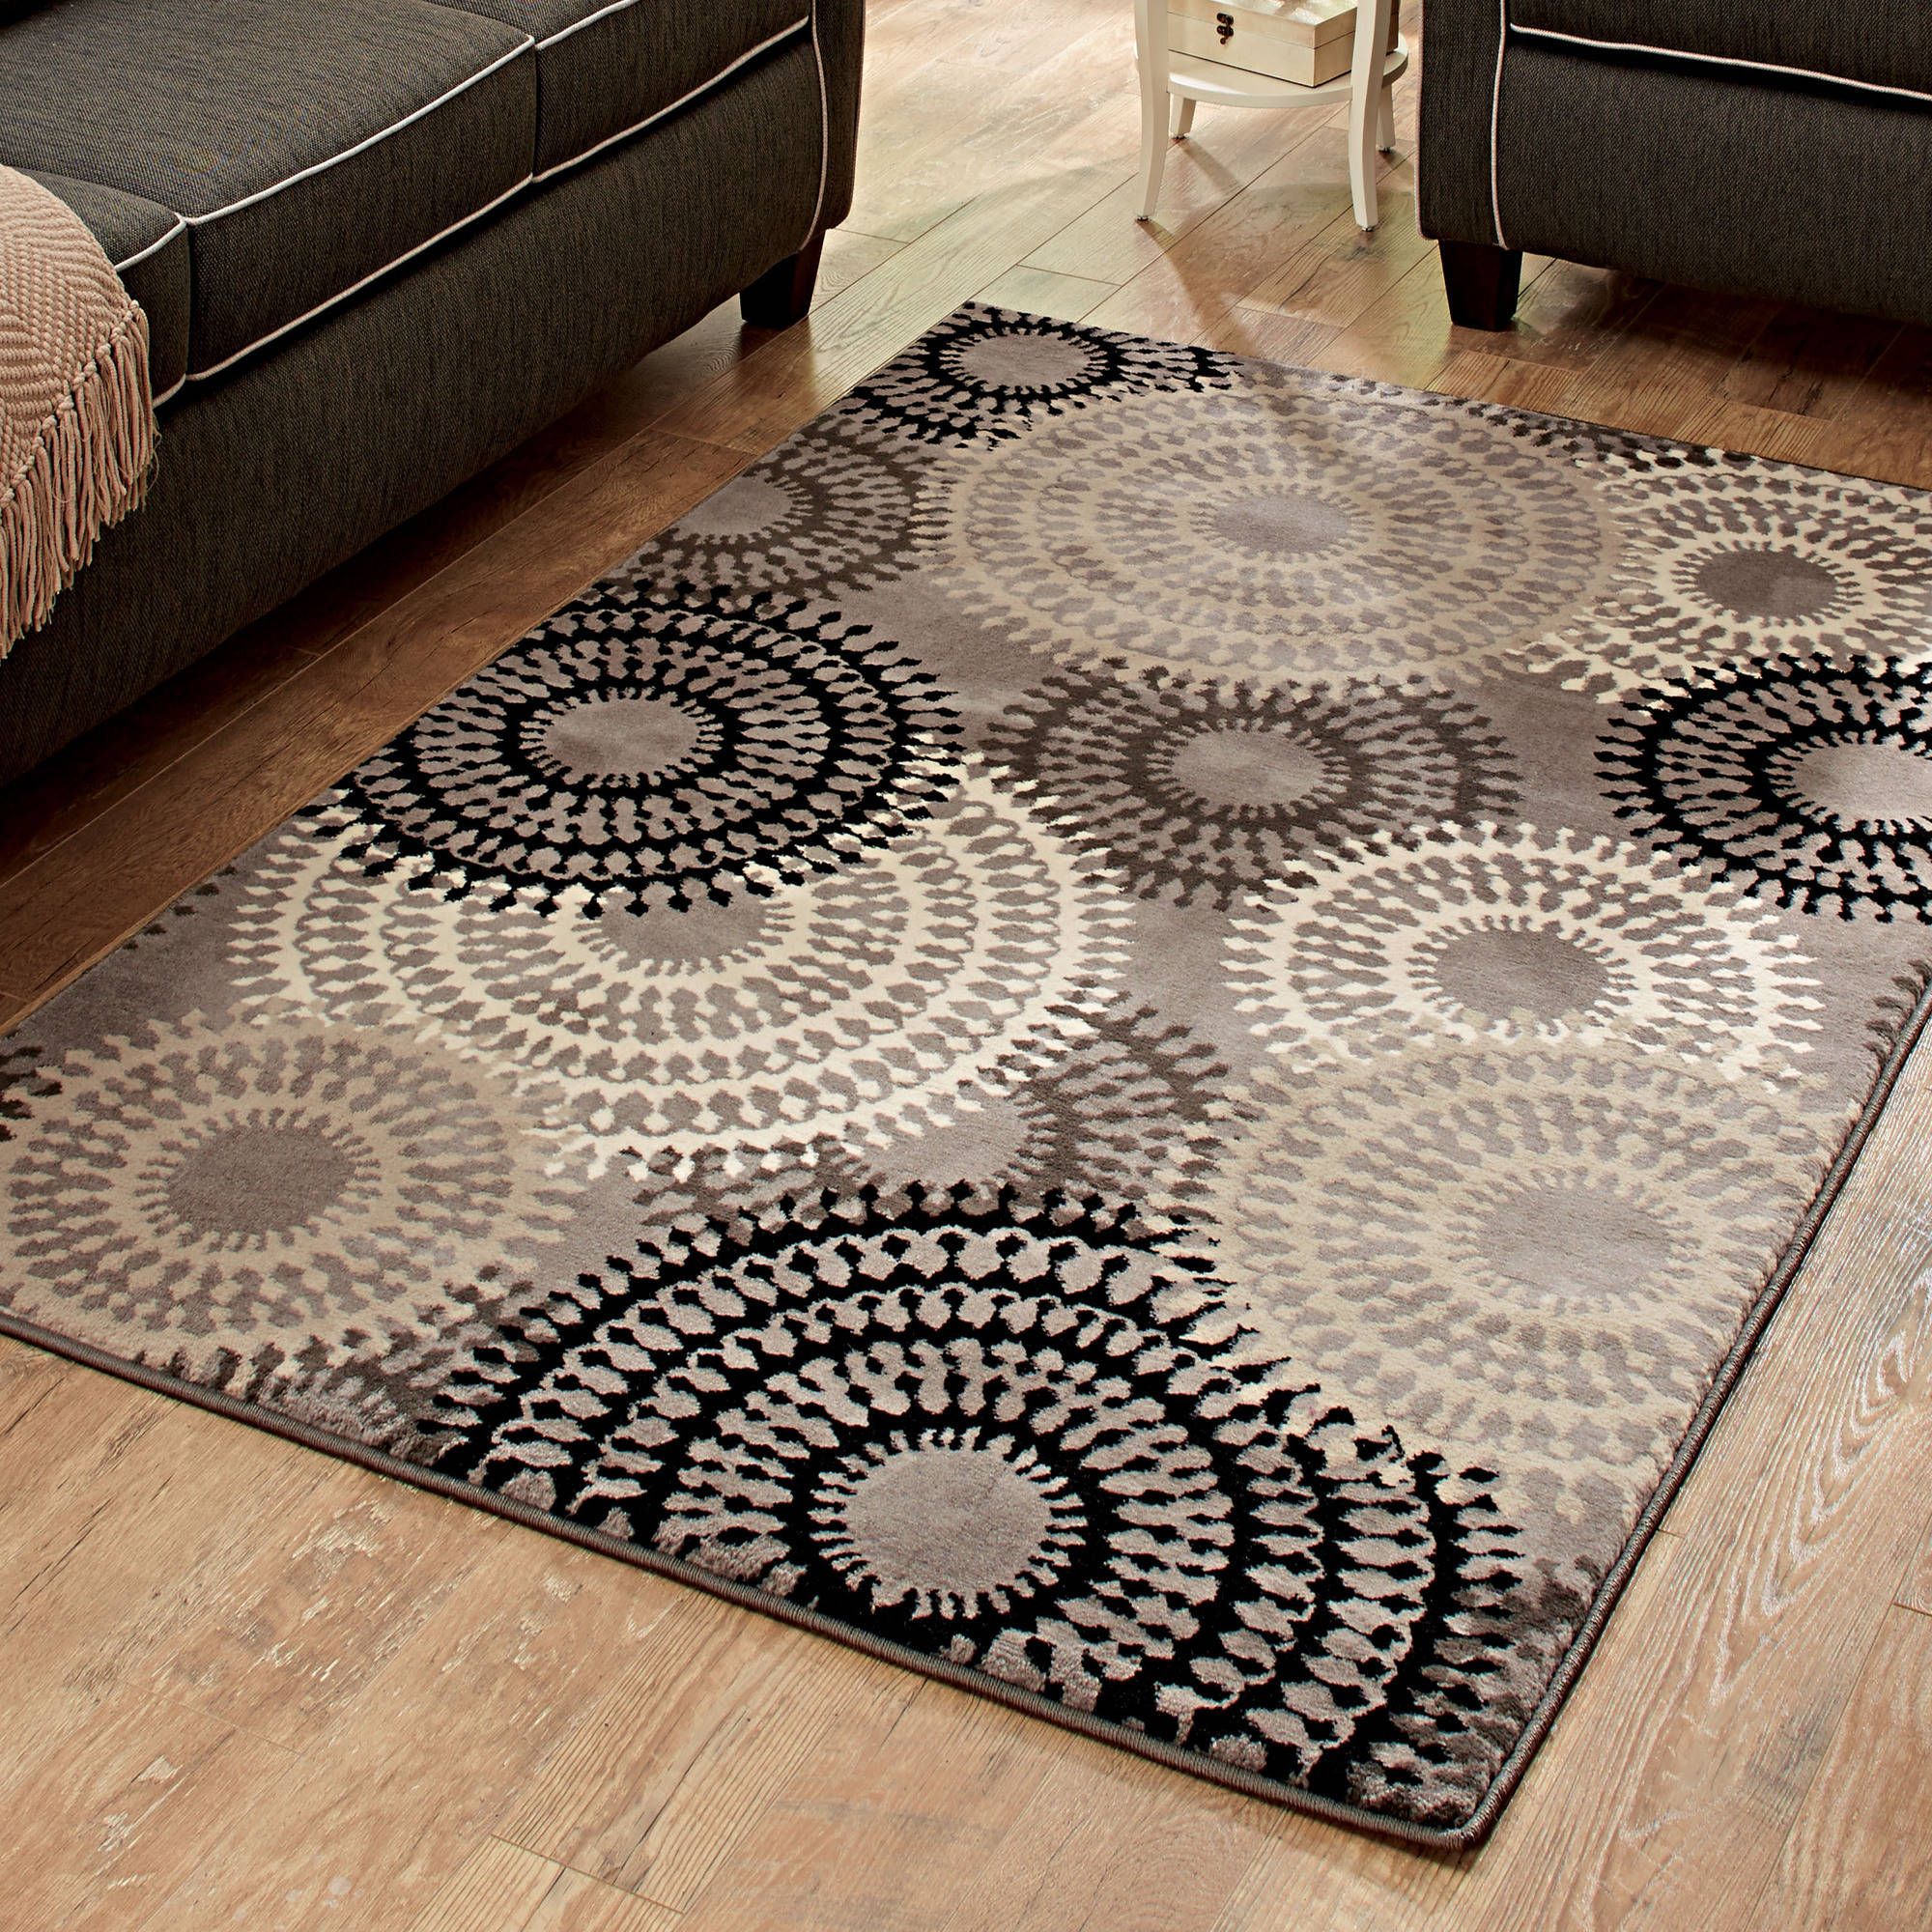 Better Homes And Gardens Taupe Ornate Circles Olefin Area Rug